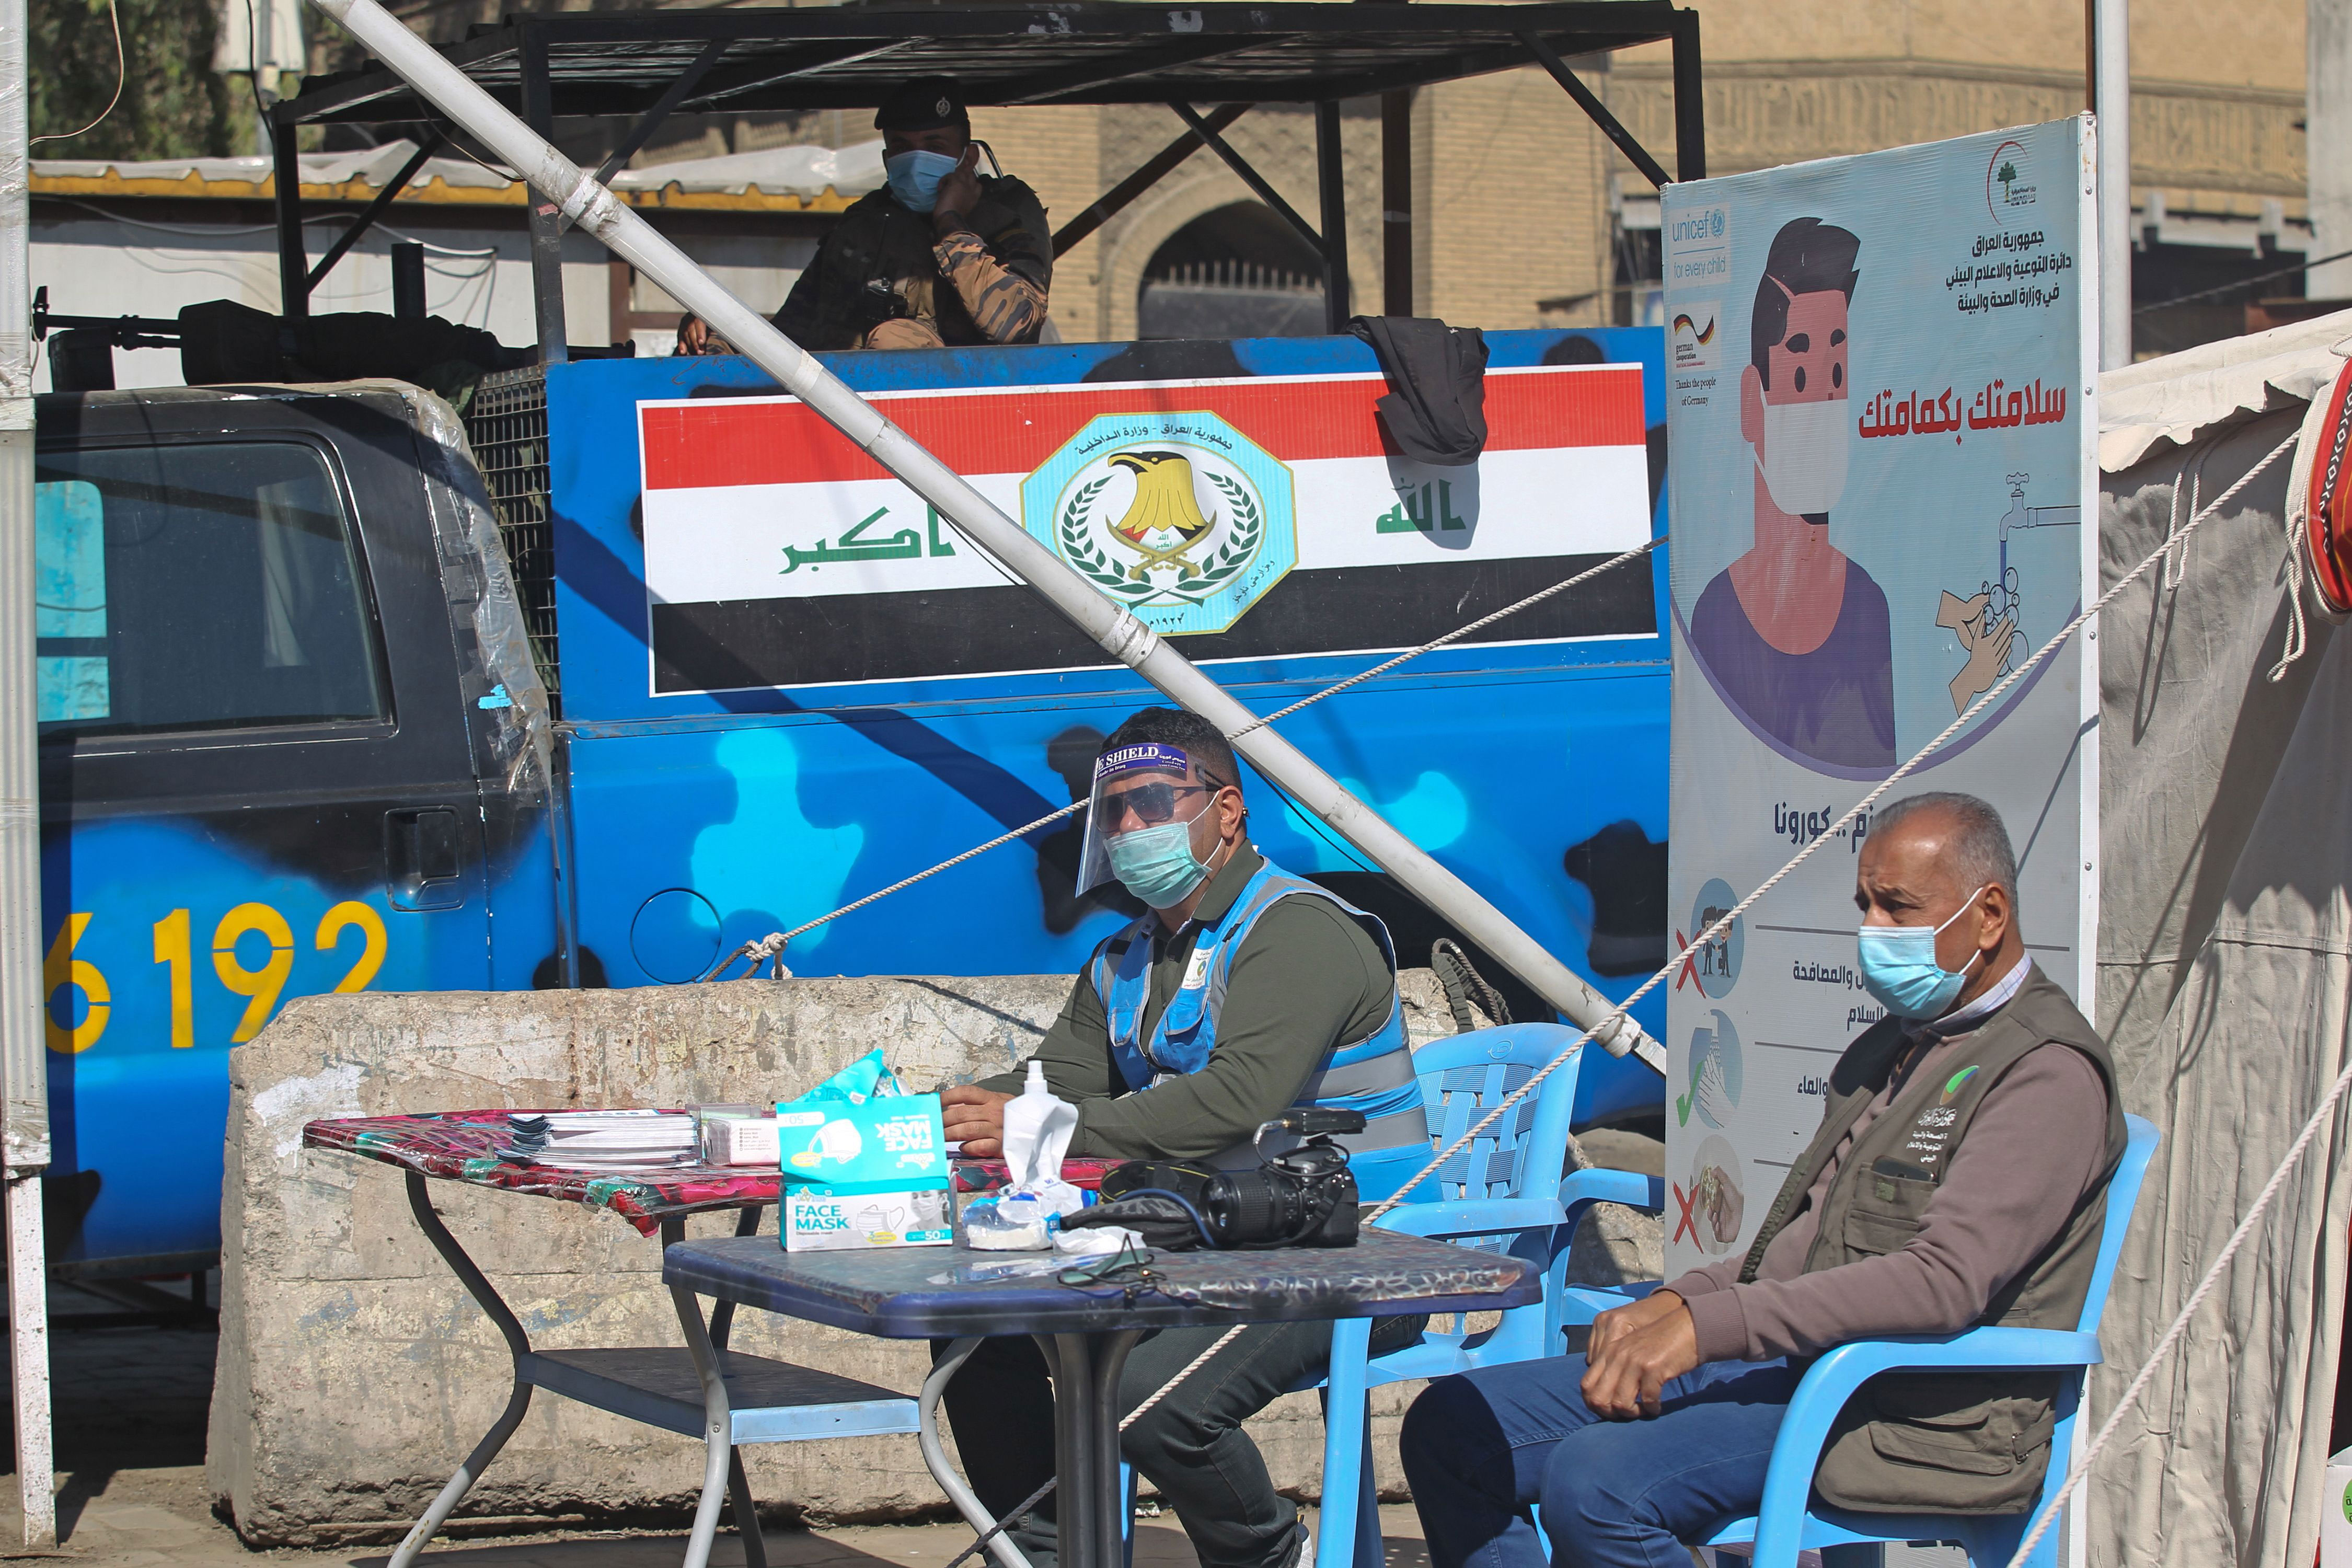 Iraqi health personnel work at a mobile Covid-19 testing unit at Baghdad's Shorja market on February 22.